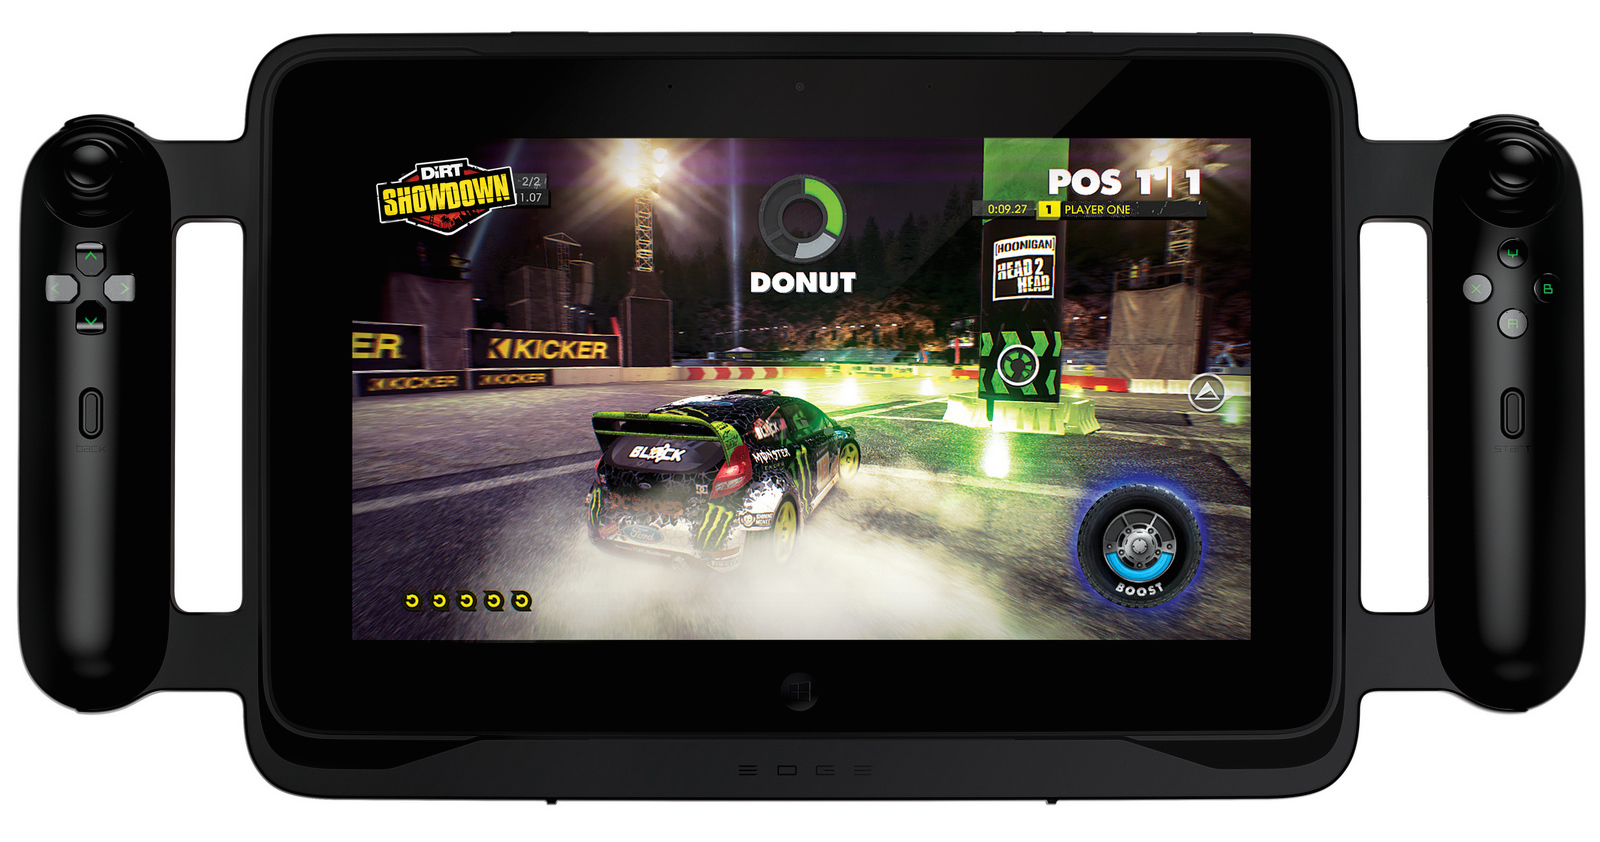 In the tablet space, Razer has even tried itself, with the short-lived Razer Edge Pro being an impressive (if expensive) Windows 8 gaming tablet with ...